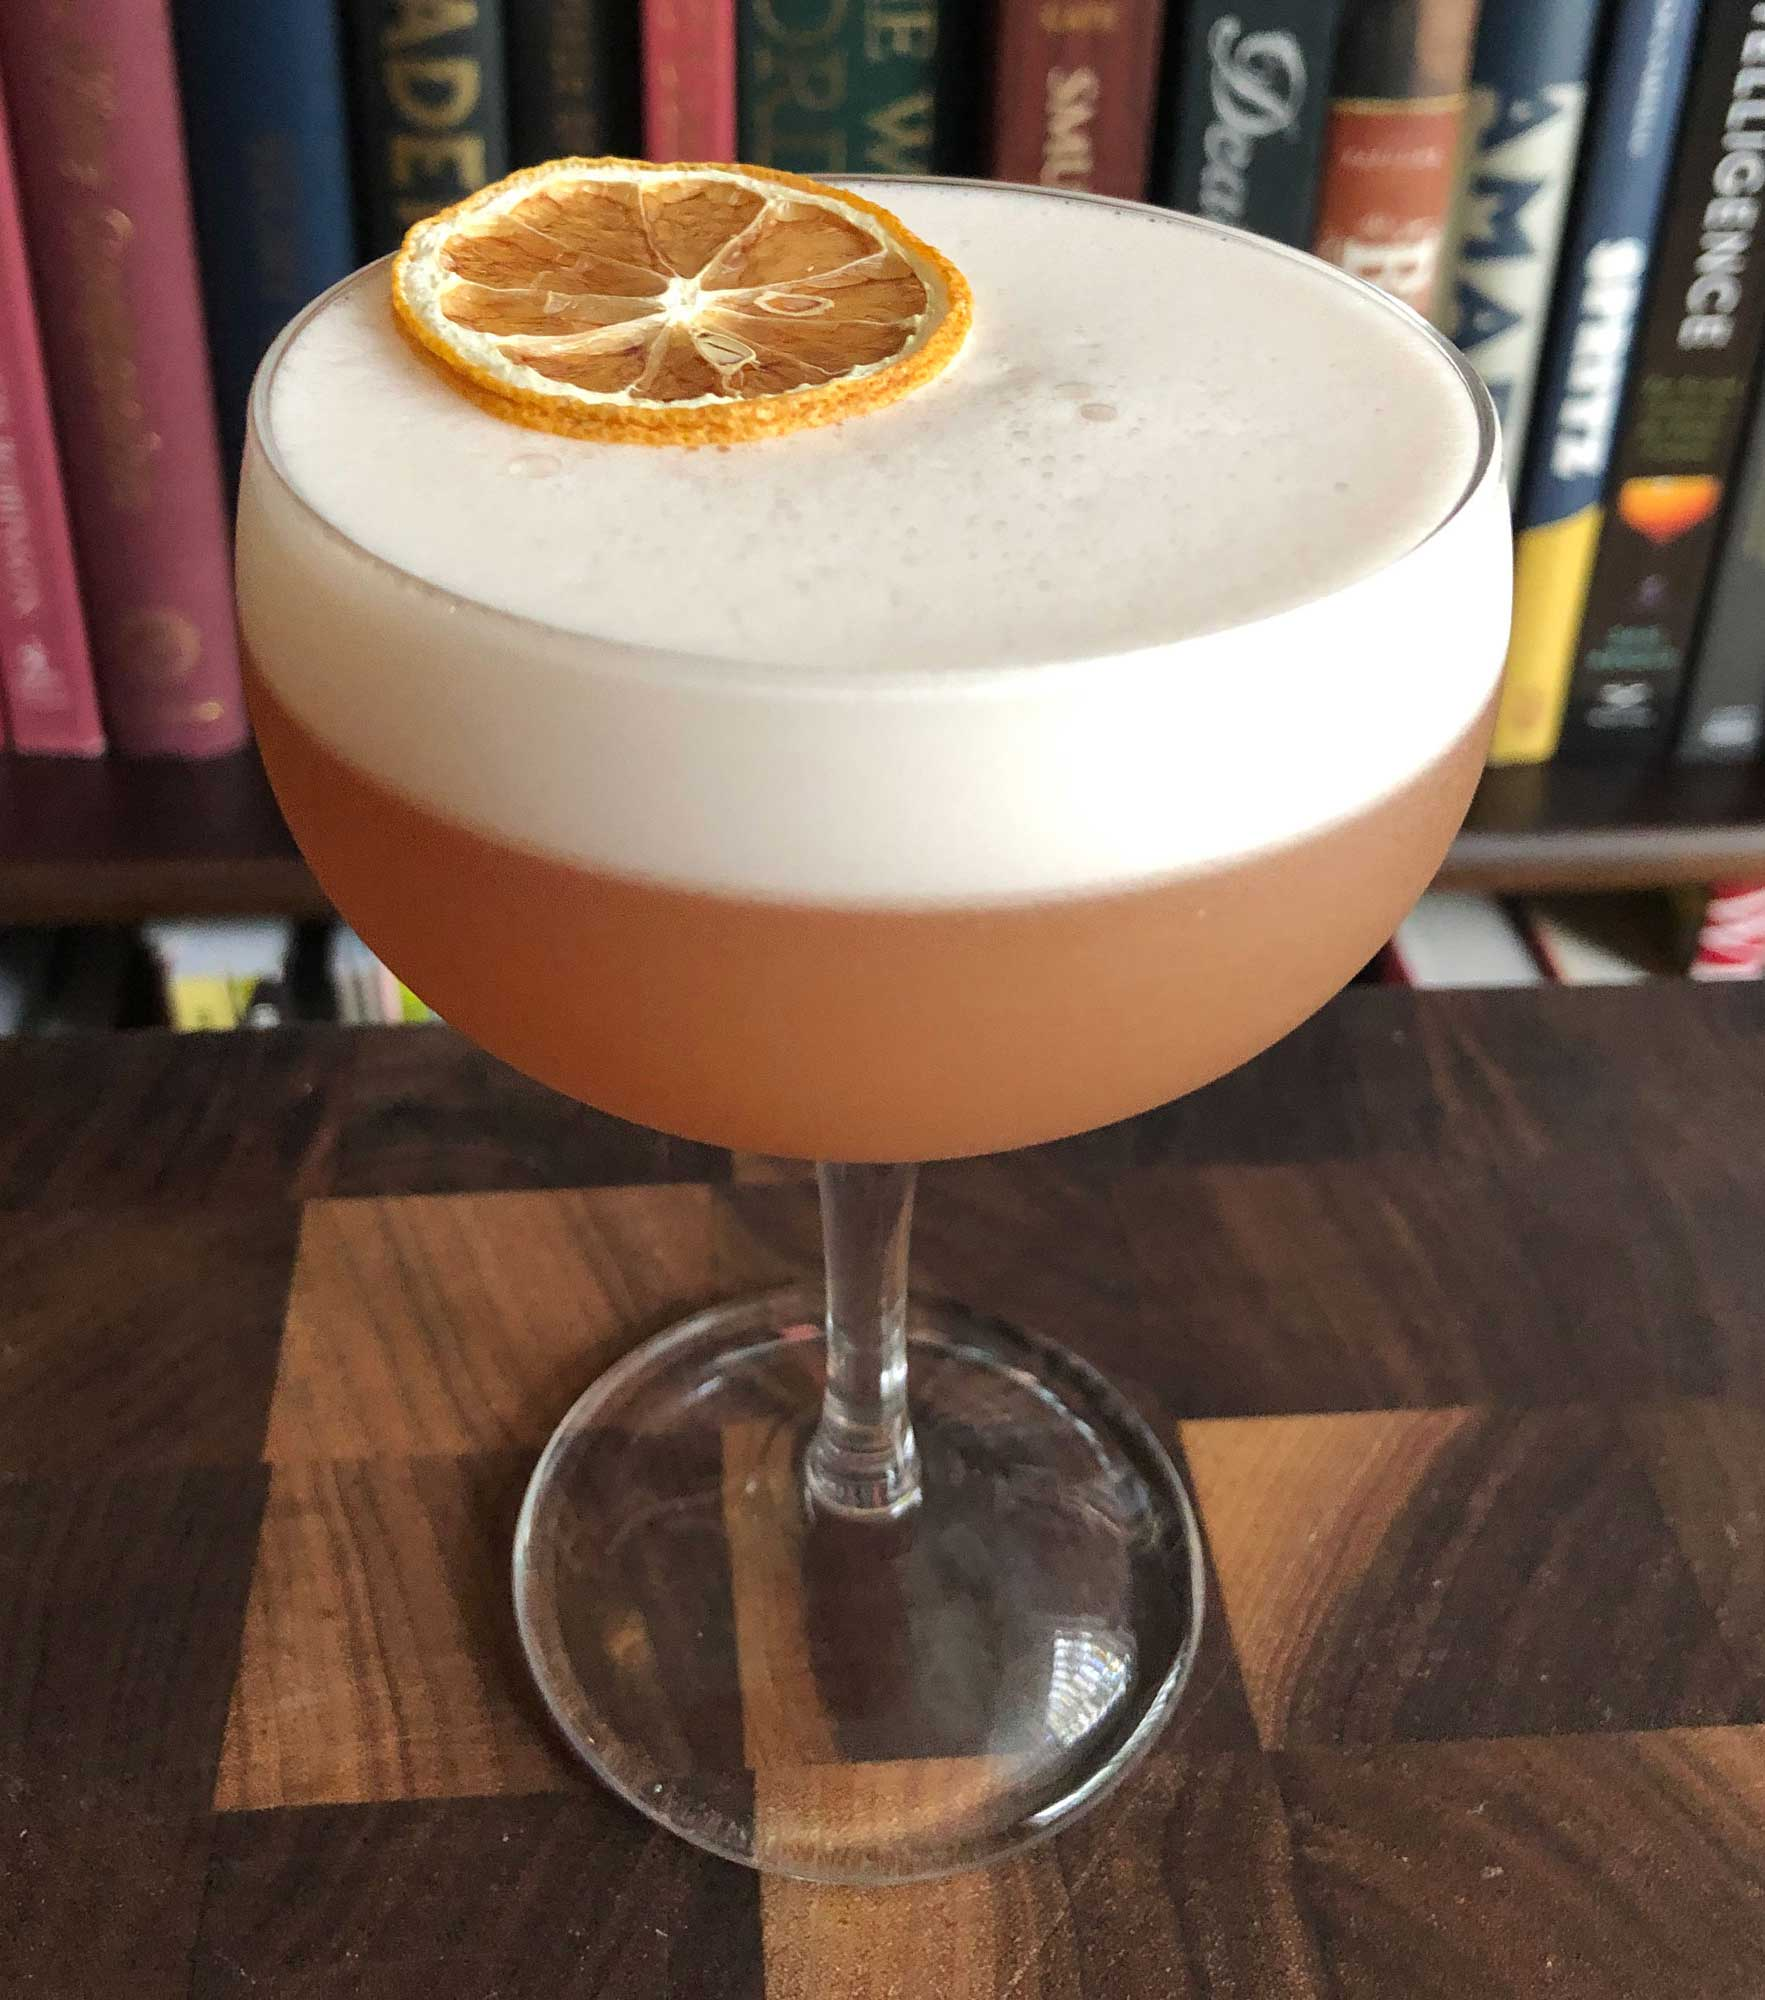 An example of the Savoy Tango Sour, the mixed drink (sour), variation of a drink from the Savoy Cocktail Book, featuring lemon juice, egg white, Hayman's Sloe Gin, apple brandy, and simple syrup; photo by Lee Edwards